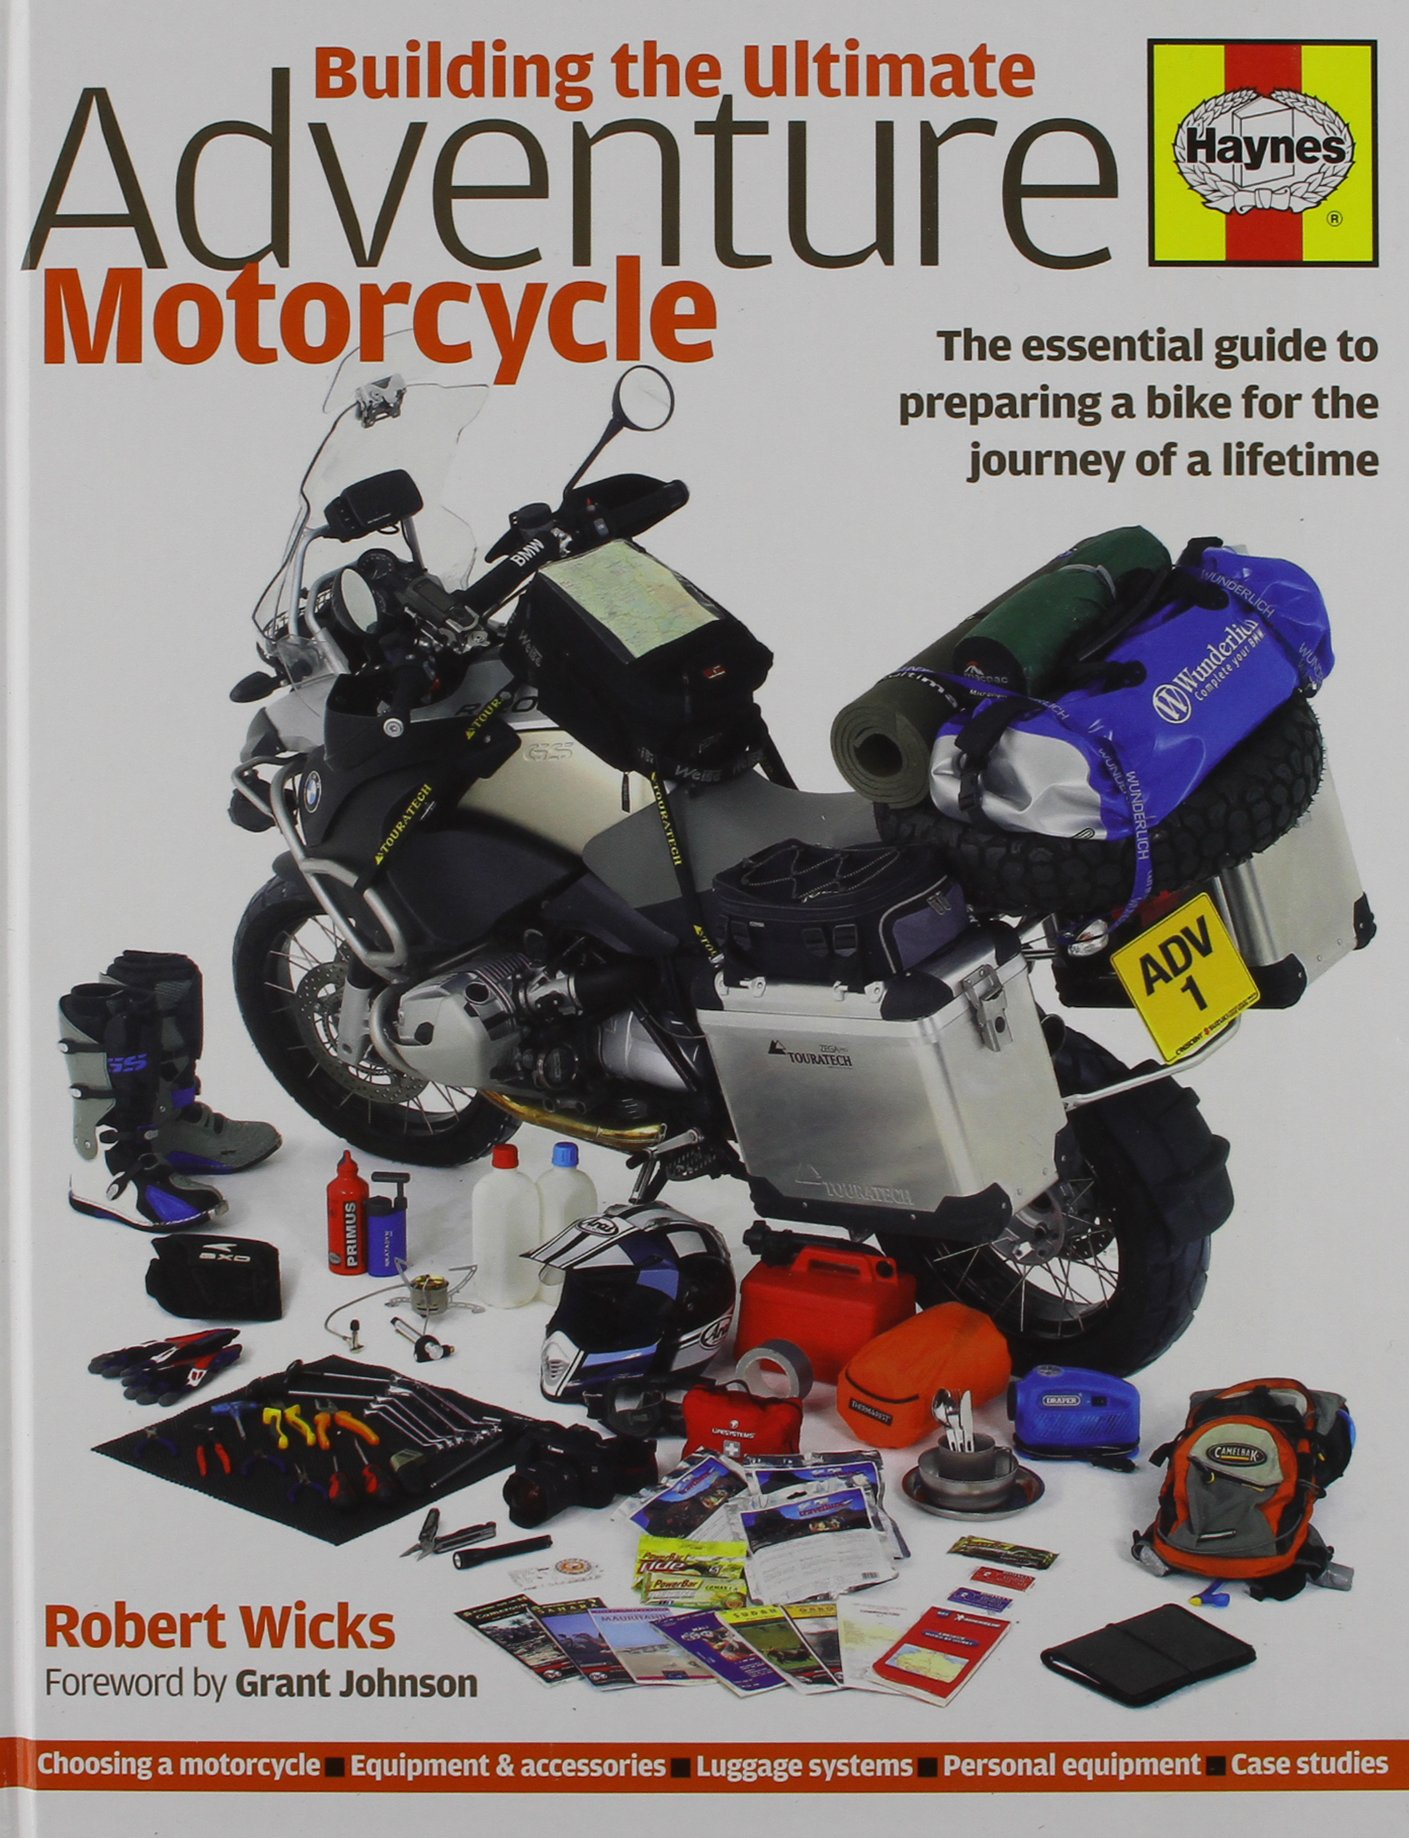 Building The Ultimate Adventure Motorcycle pdf